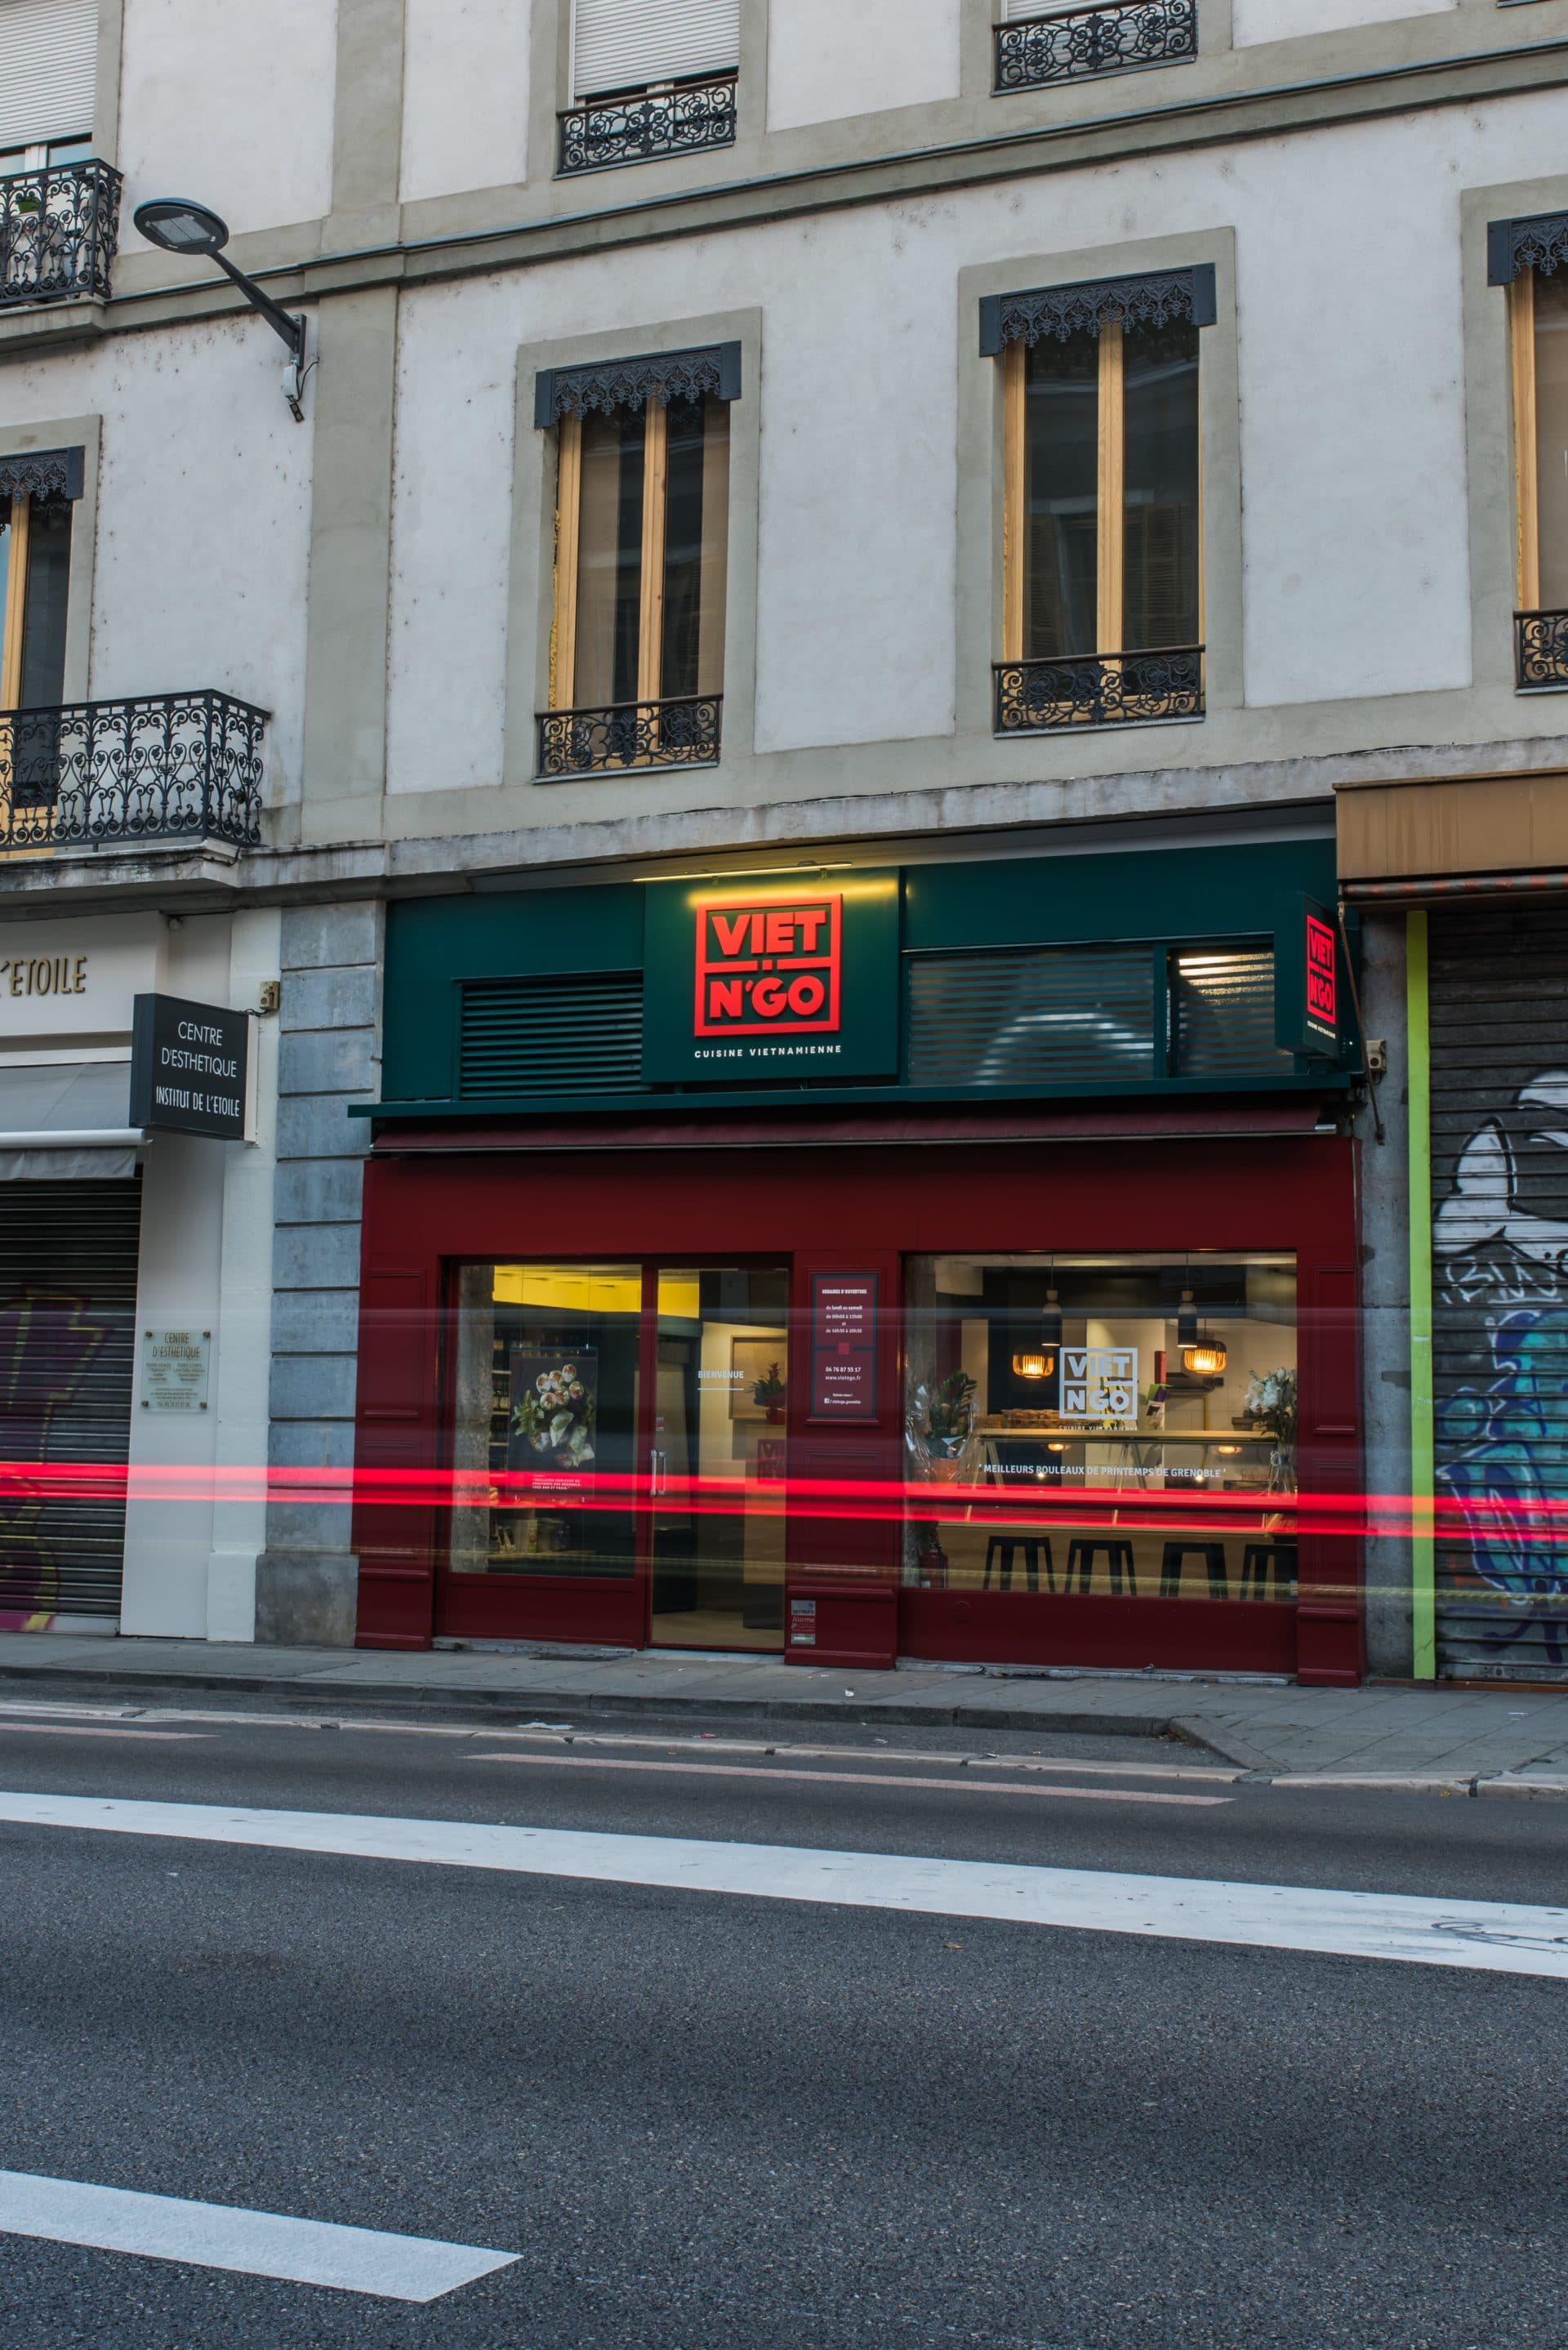 Rénovation d'un restaurant asiatique à Grenoble (38)